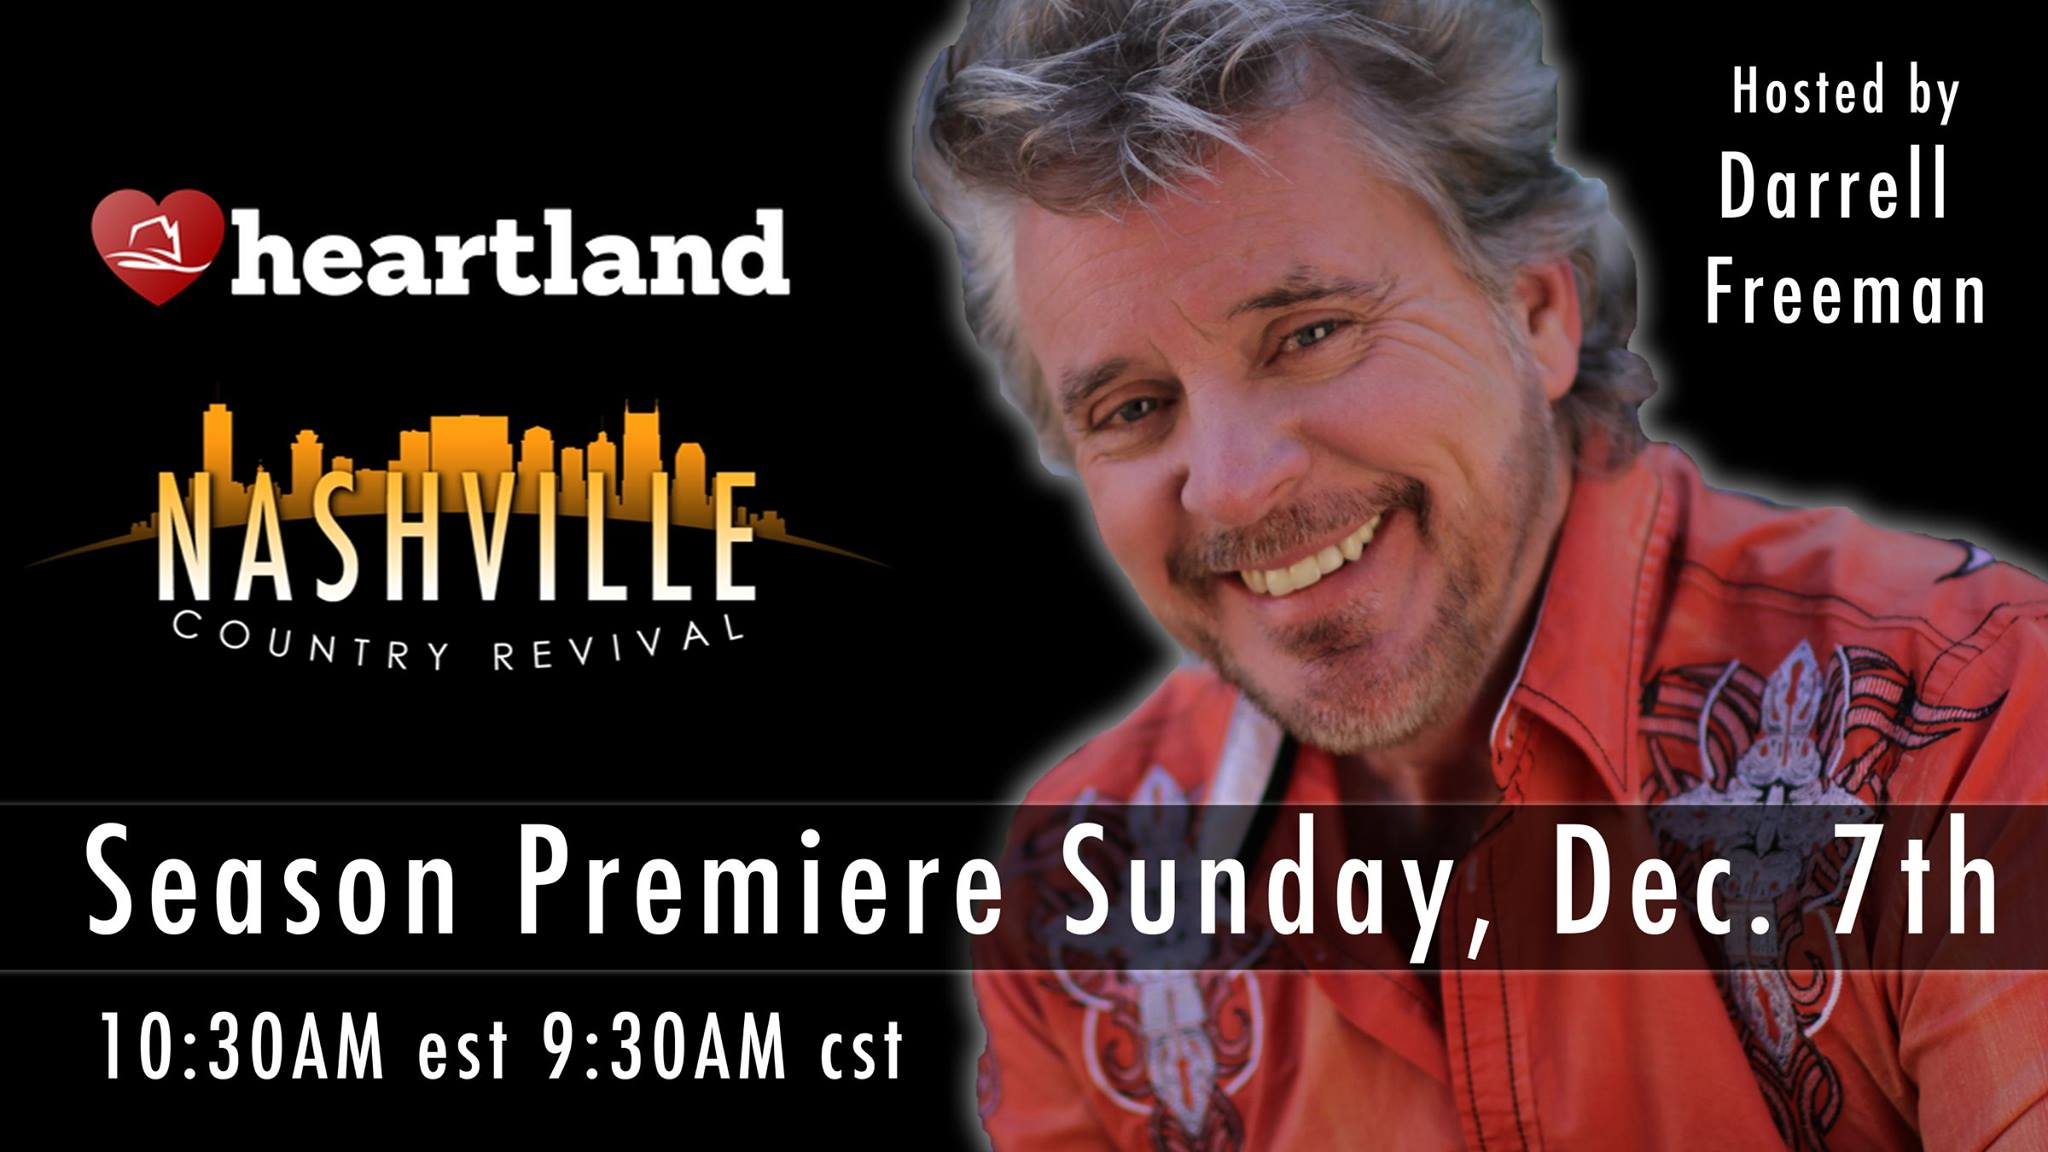 A New Season of Nashville Country Revival to Debut on Heartland TV